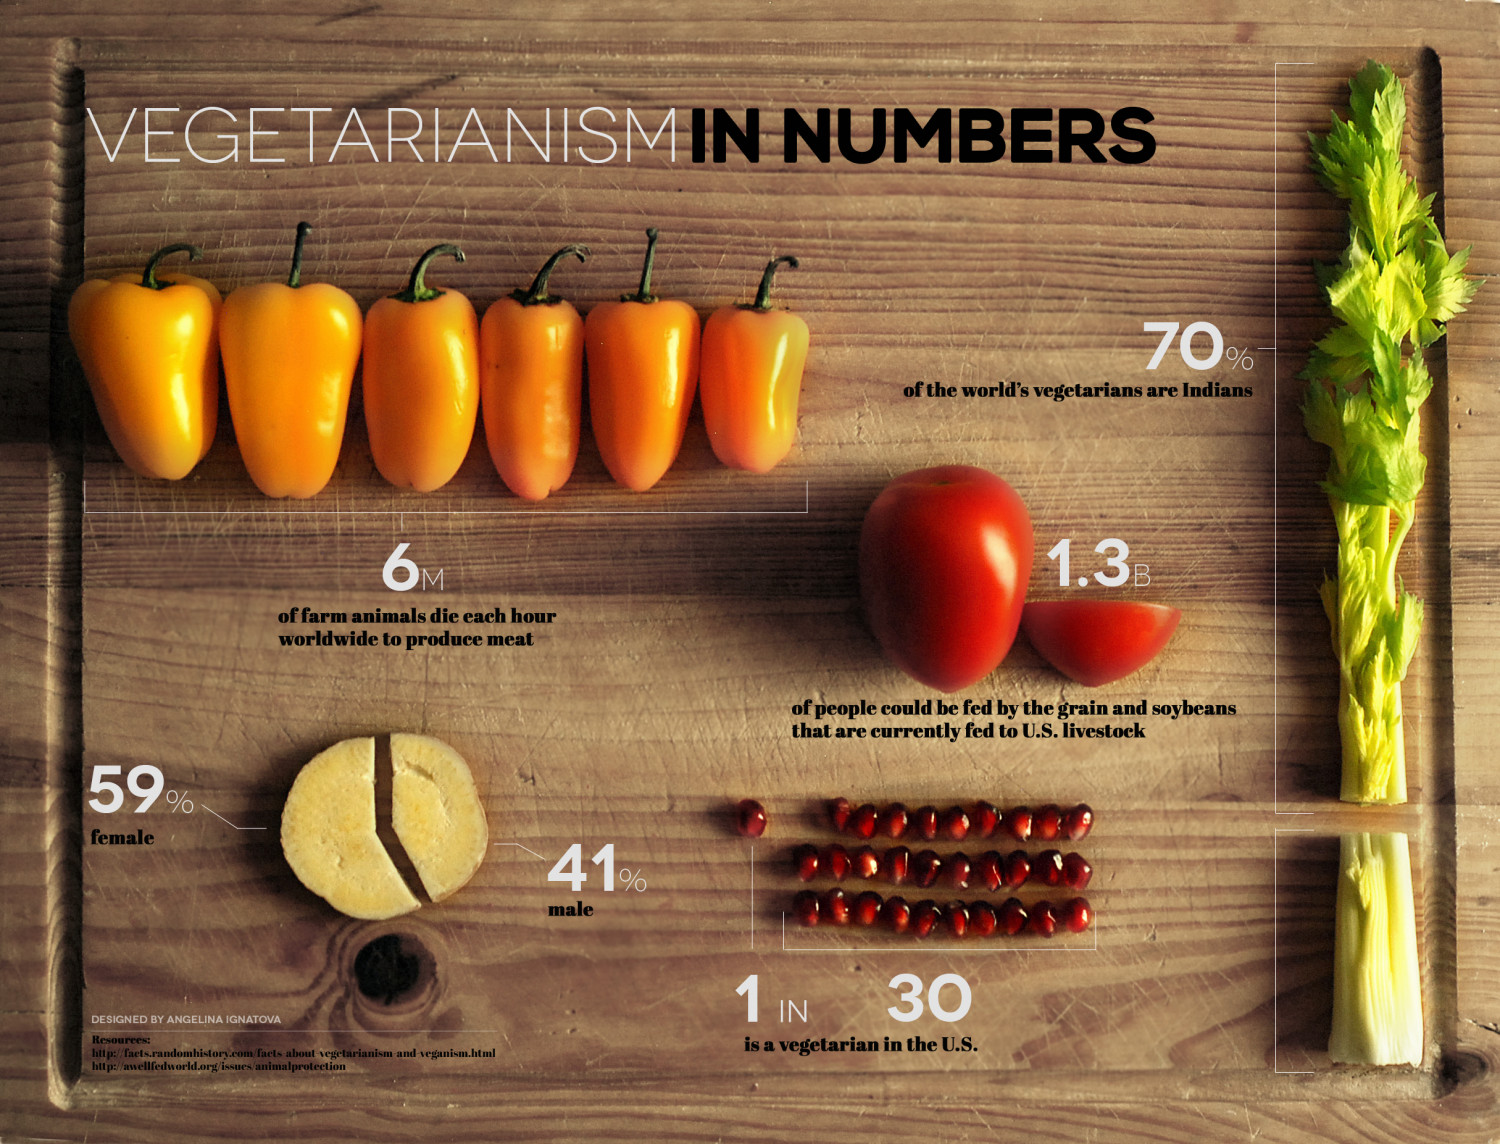 Hand made infographic on Vegetarianism, designed by Angelina